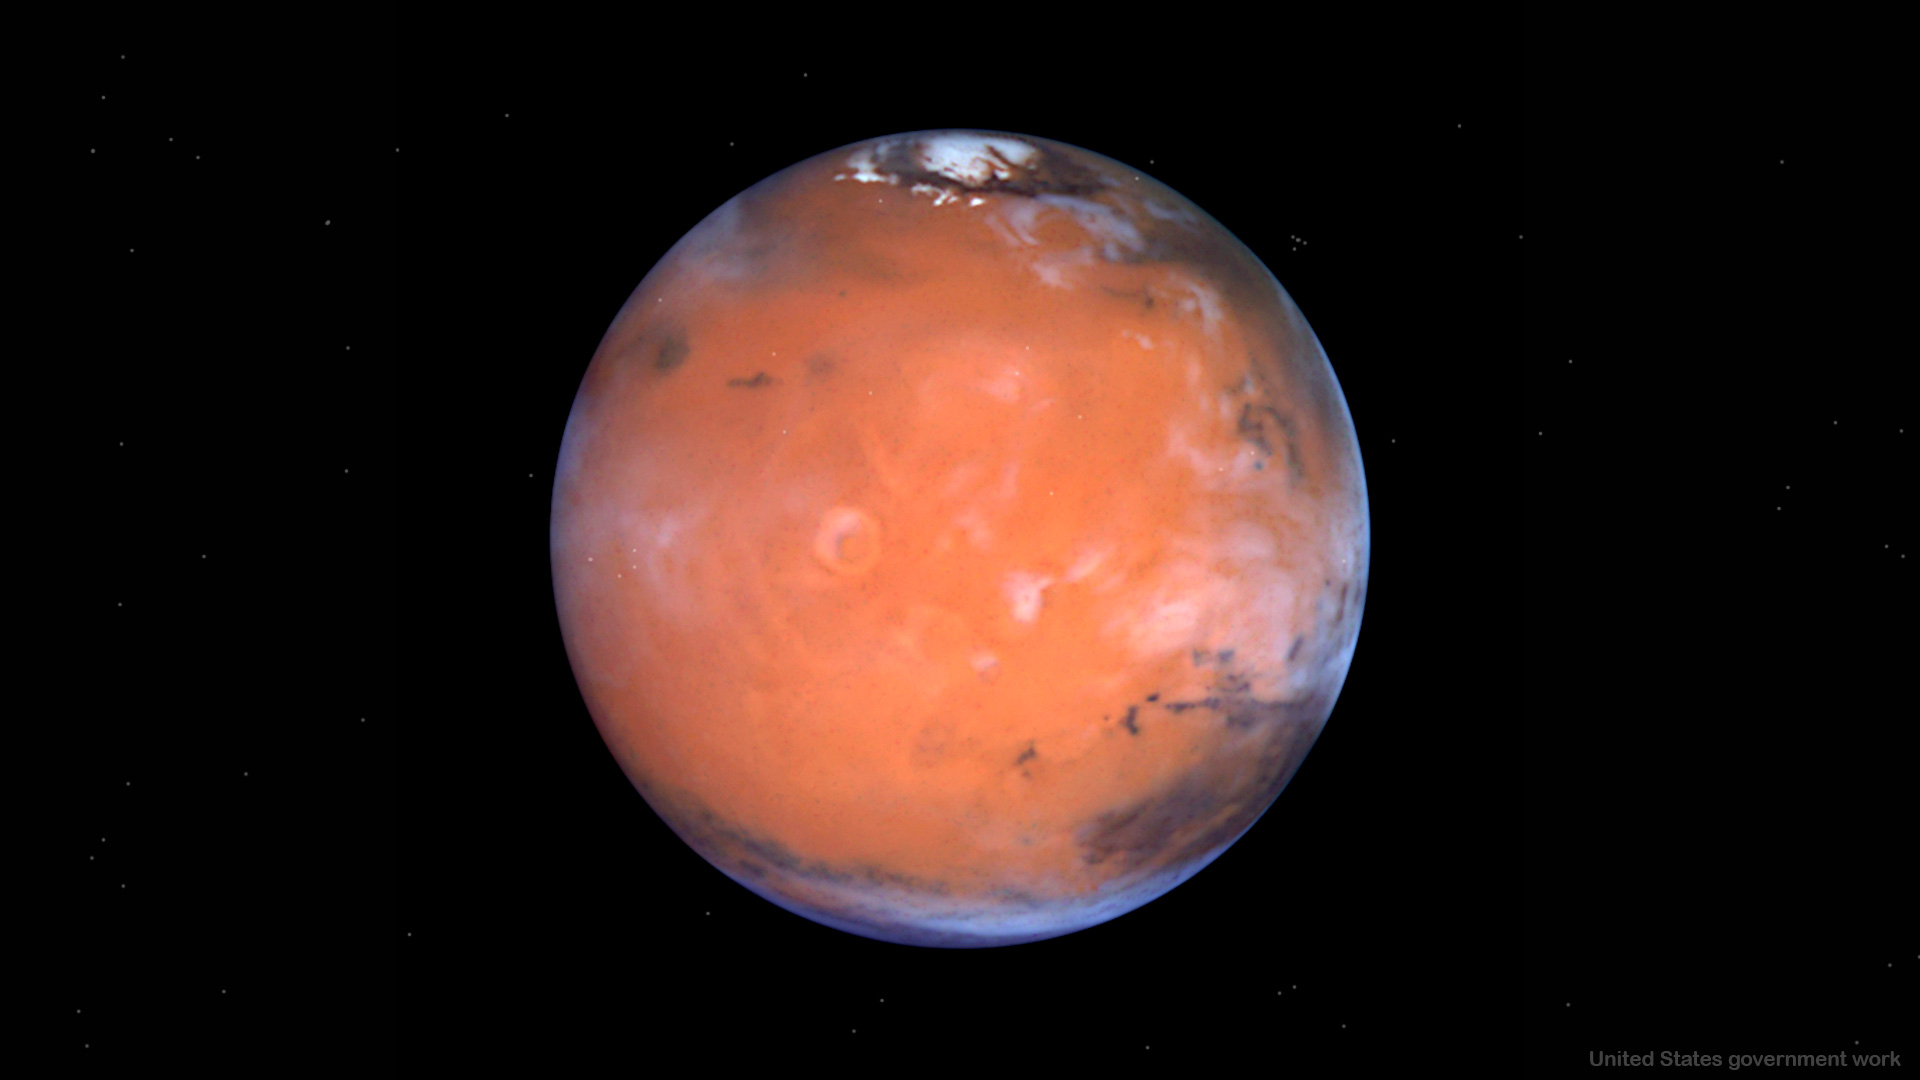 Planet Mars in Space Background optimized for presentations